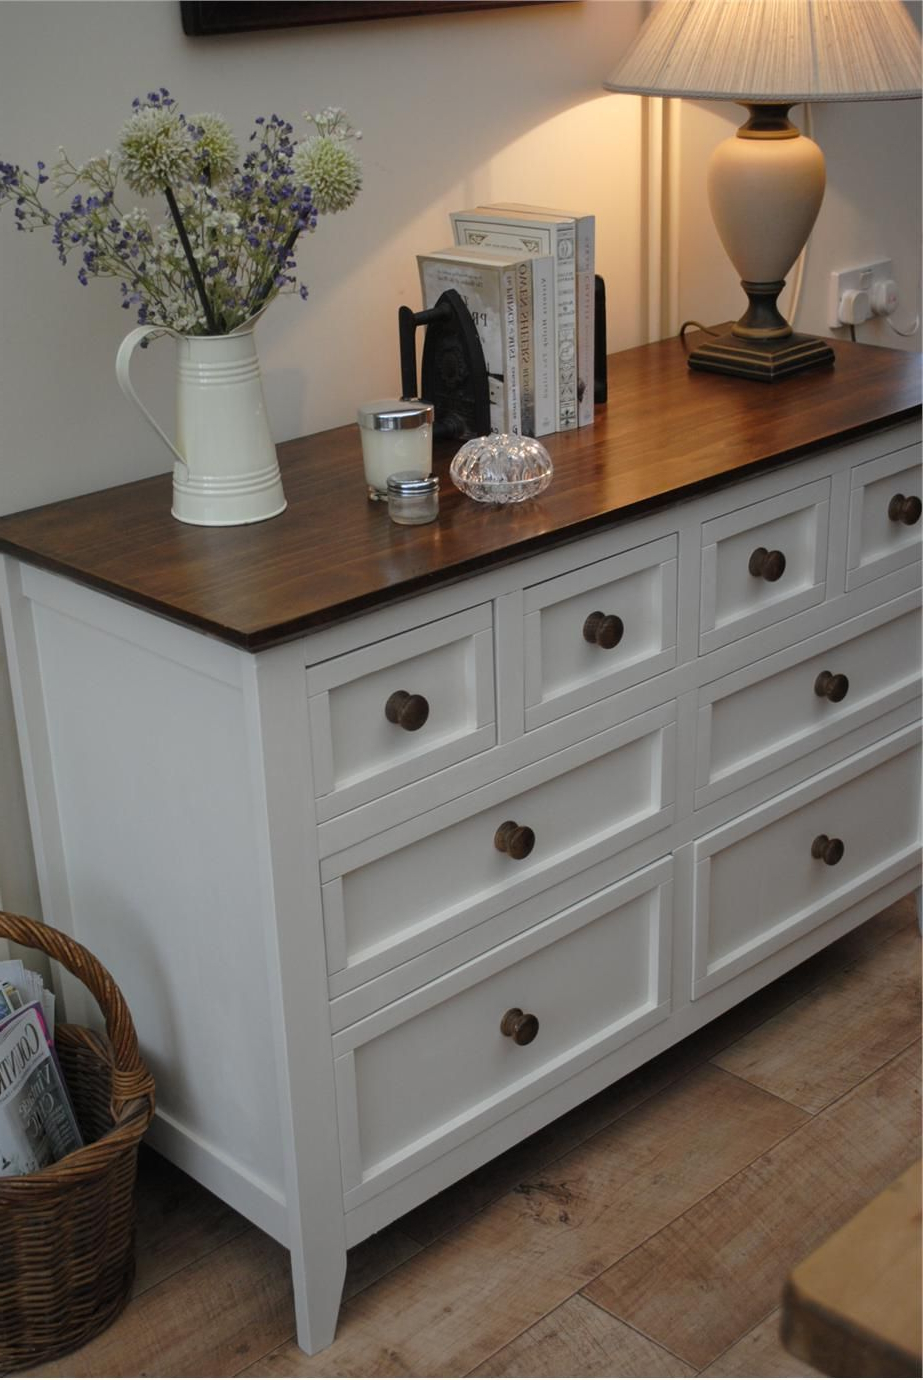 Or This – With Different Knobs And A White Or Grey Or Black Painted Pertaining To Widely Used Satin Black & Painted White Sideboards (Gallery 7 of 20)